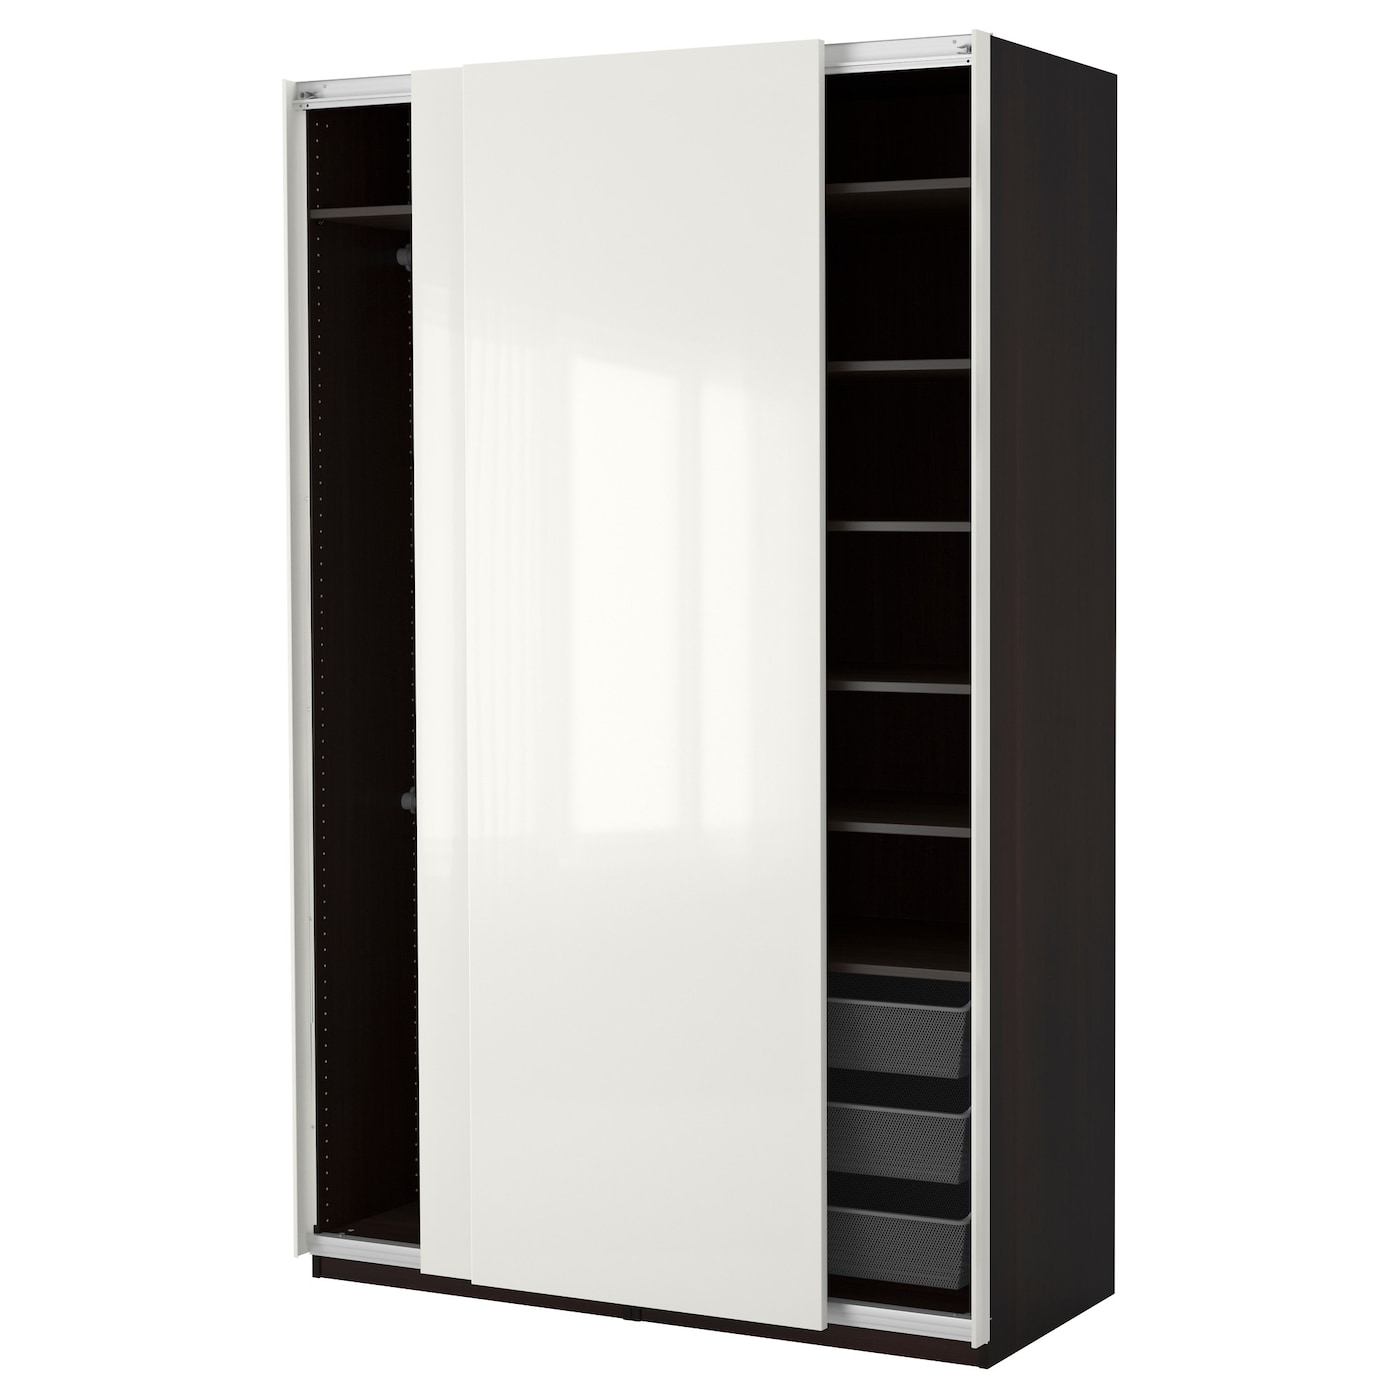 pax wardrobe black brown hasvik high gloss white 150 x 66 x 236 cm ikea. Black Bedroom Furniture Sets. Home Design Ideas